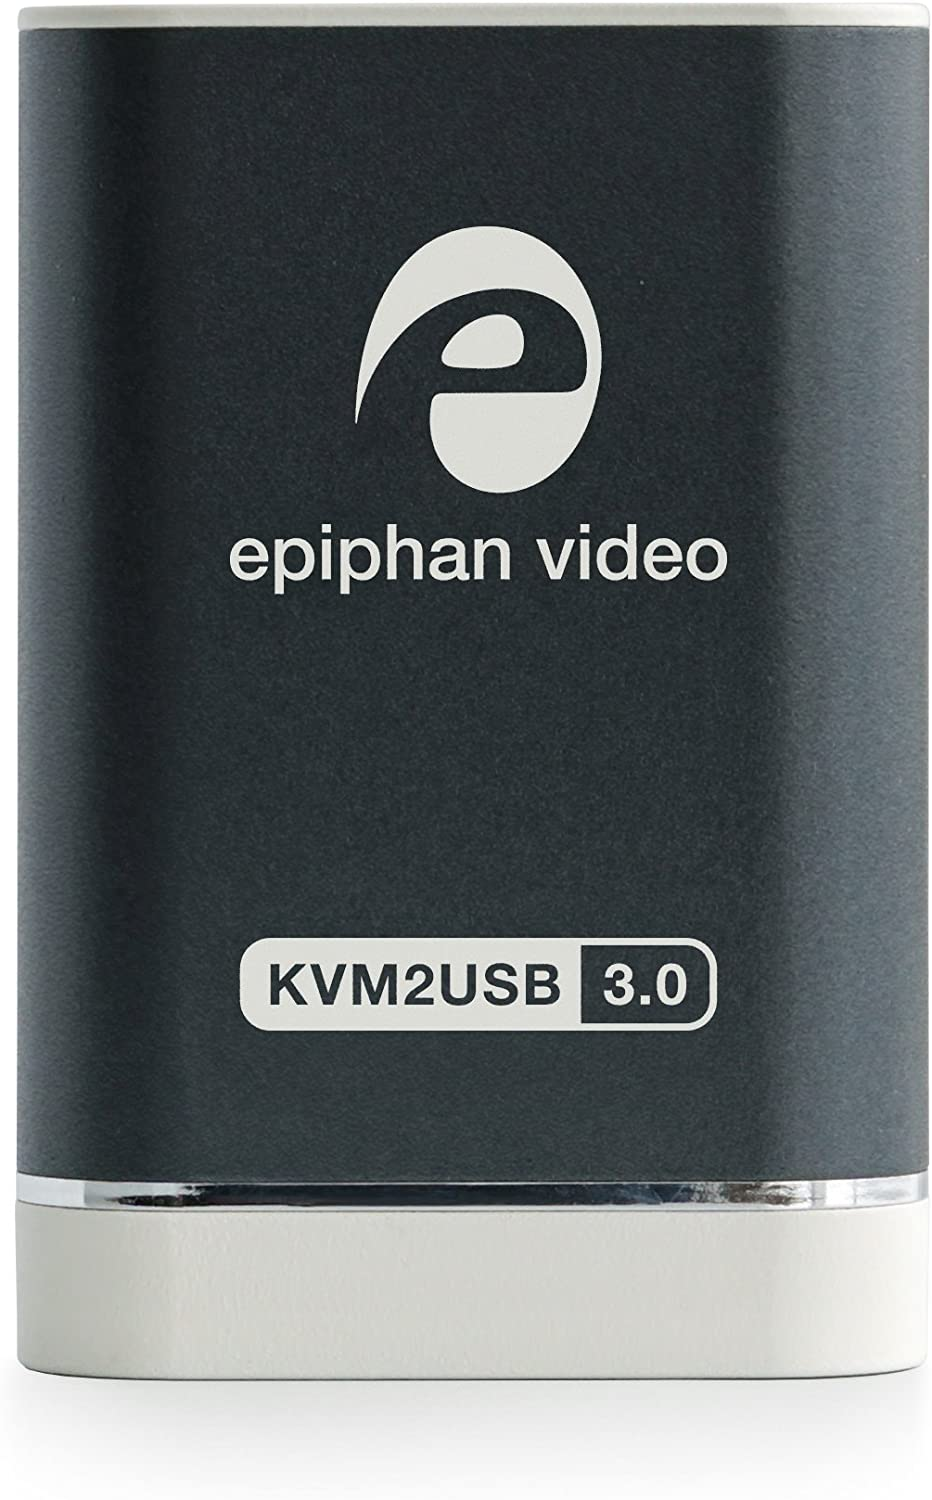 Epiphan KVM2USB 3.0 - a Local KVM Crash cart That Runs Over USB and Works with Any Target Computer